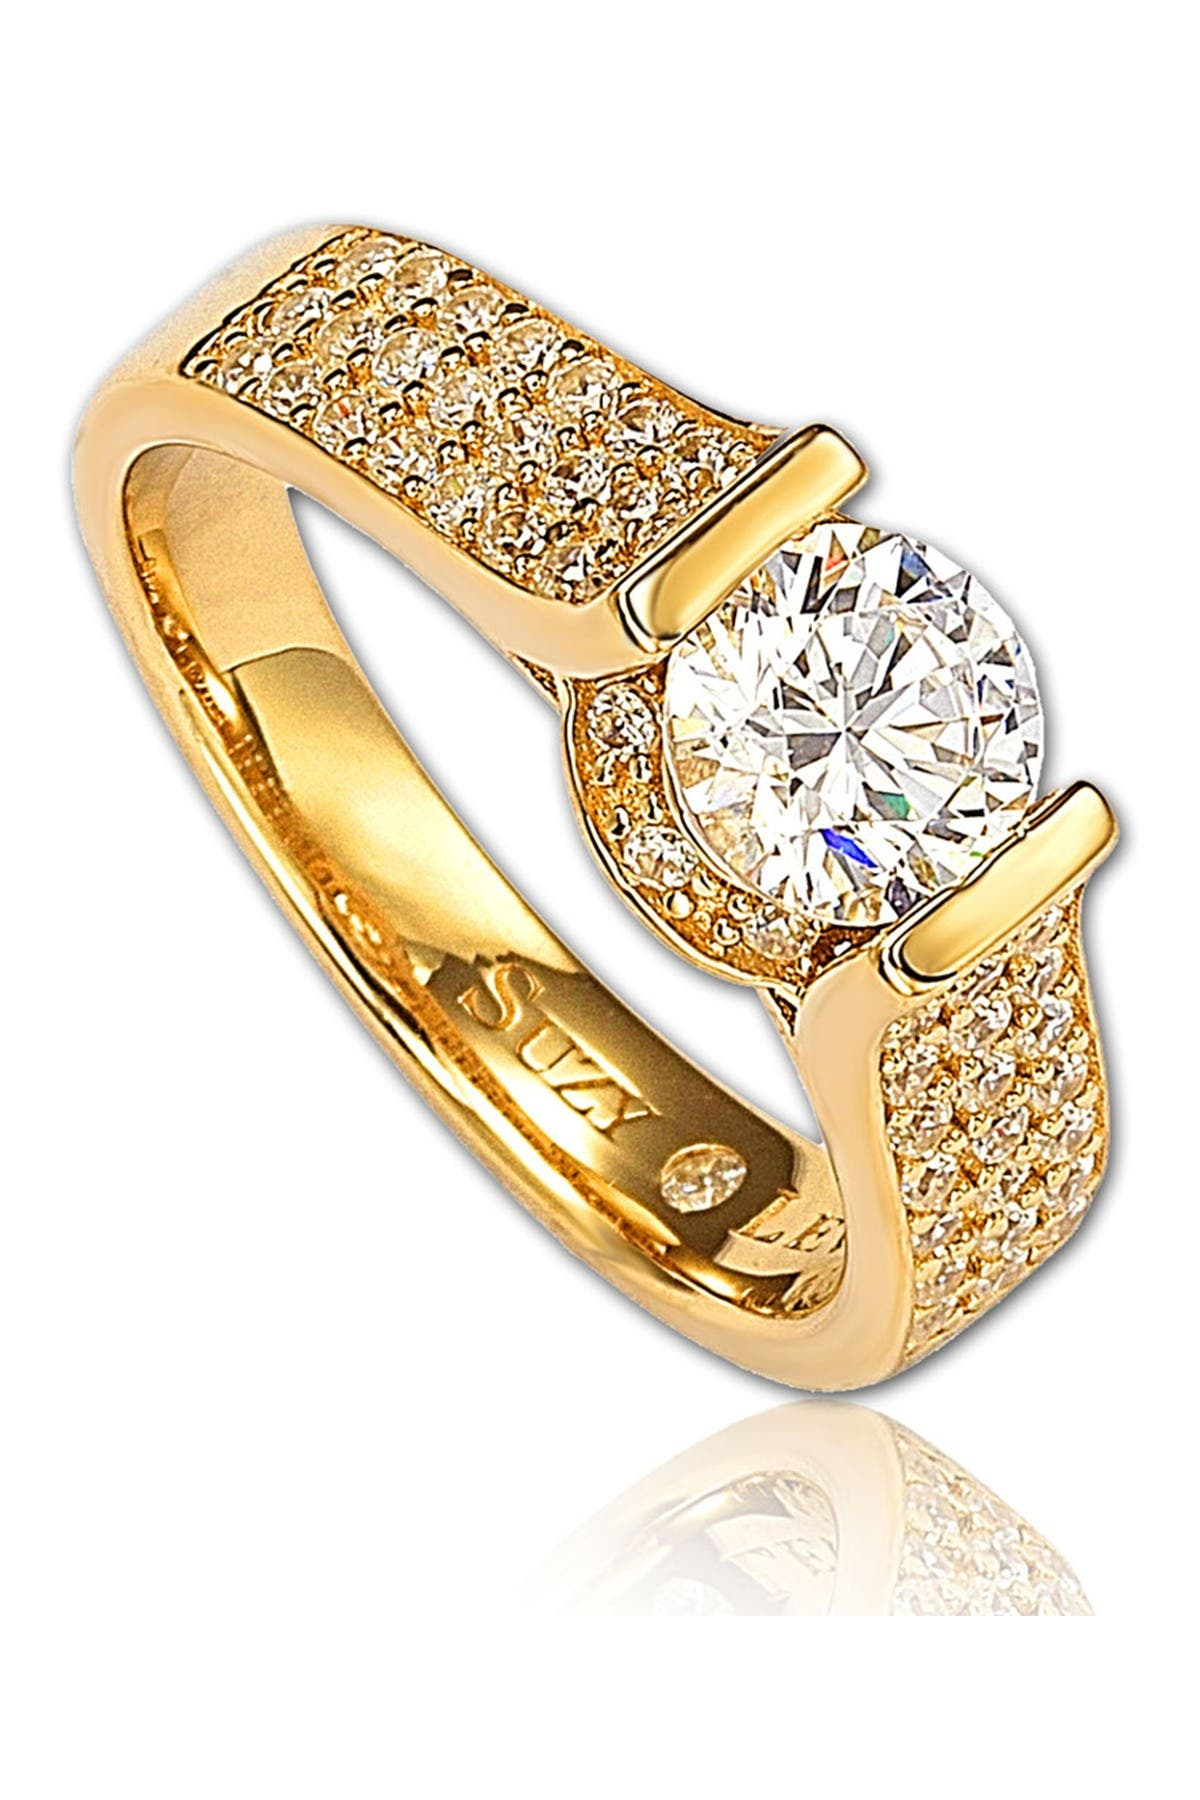 Image of Suzy Levian Bridal Golden Sterling Silver CZ Ring